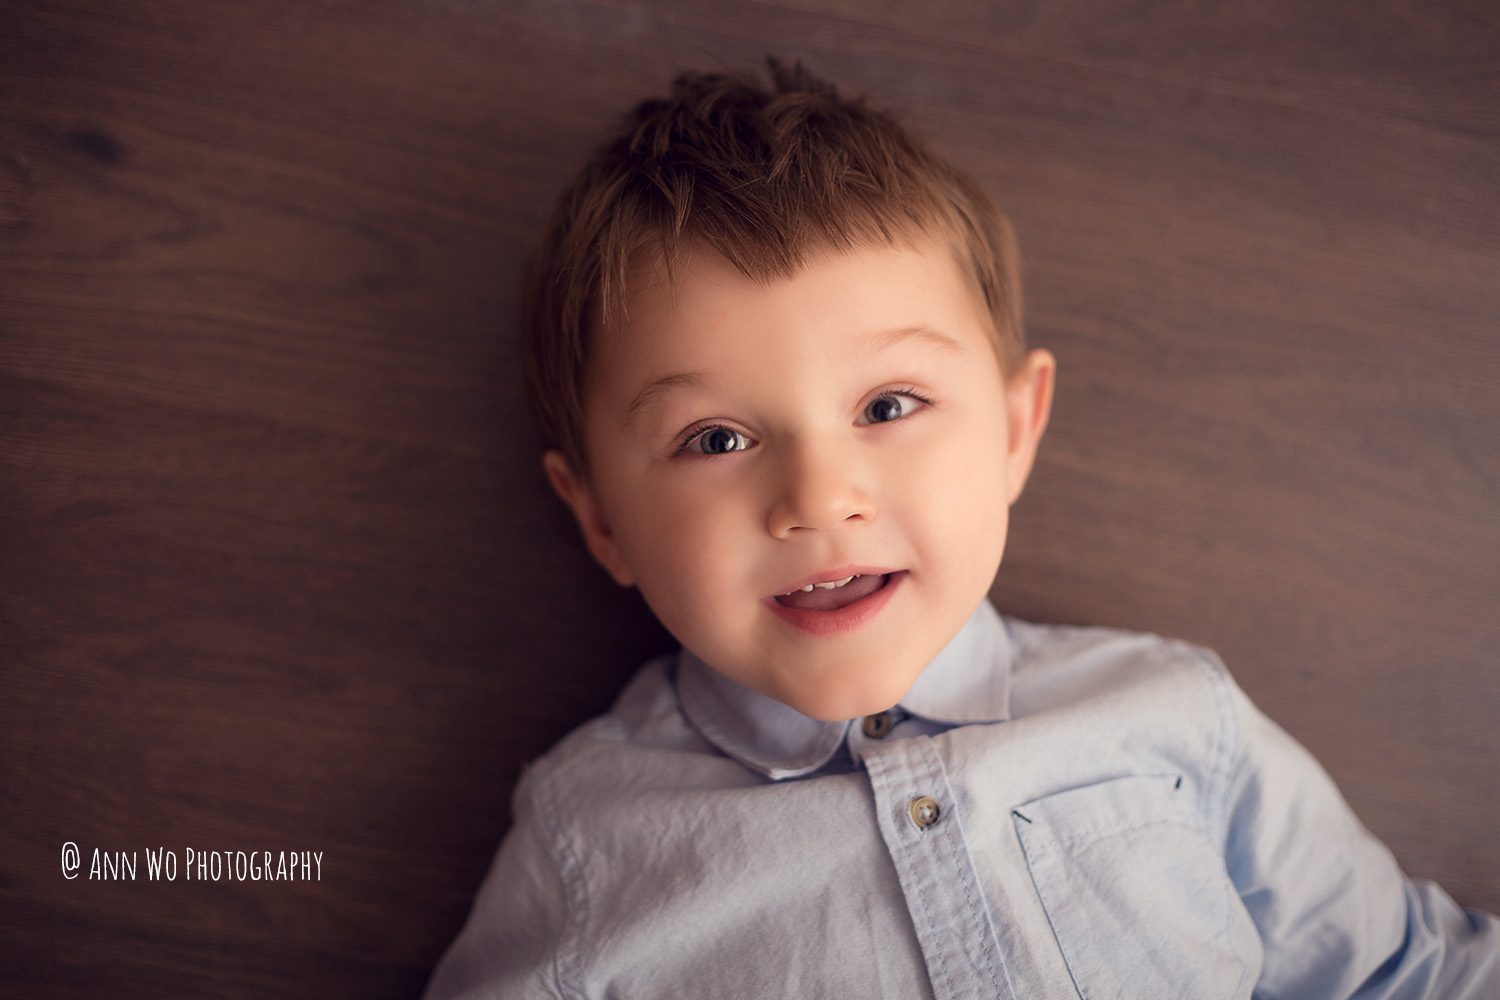 shot-from-top-photography-studio-light-toddler.jpg